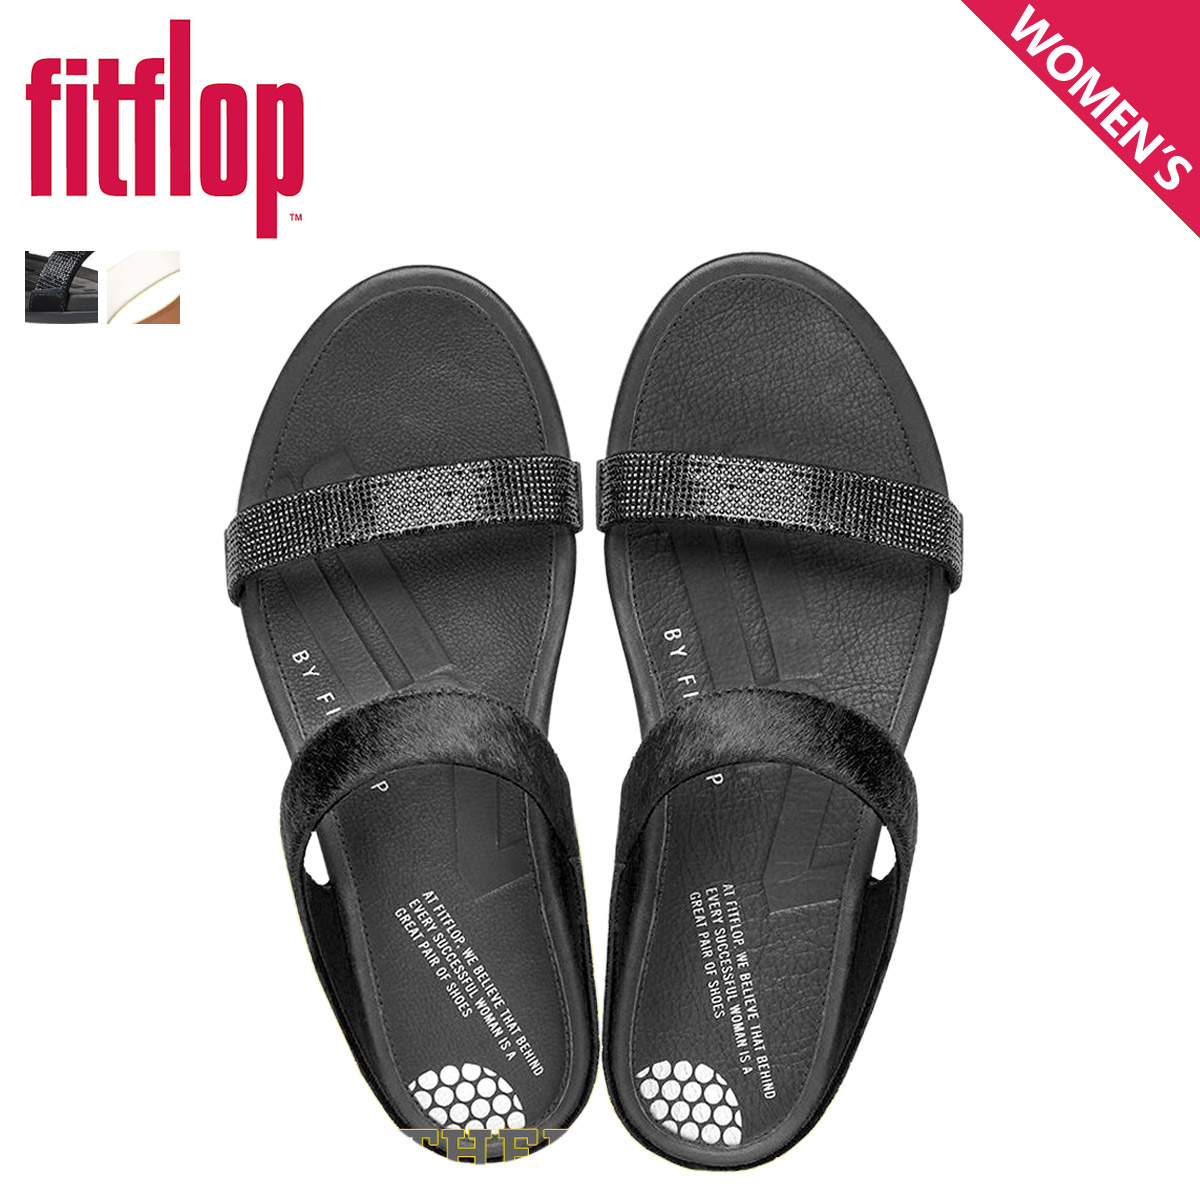 9bae2203fc4bb ... the density put a diverse focus on the fit flop Sandals first. New  generation footwear brand revolutionized the modern shoe industry does not  understand ...